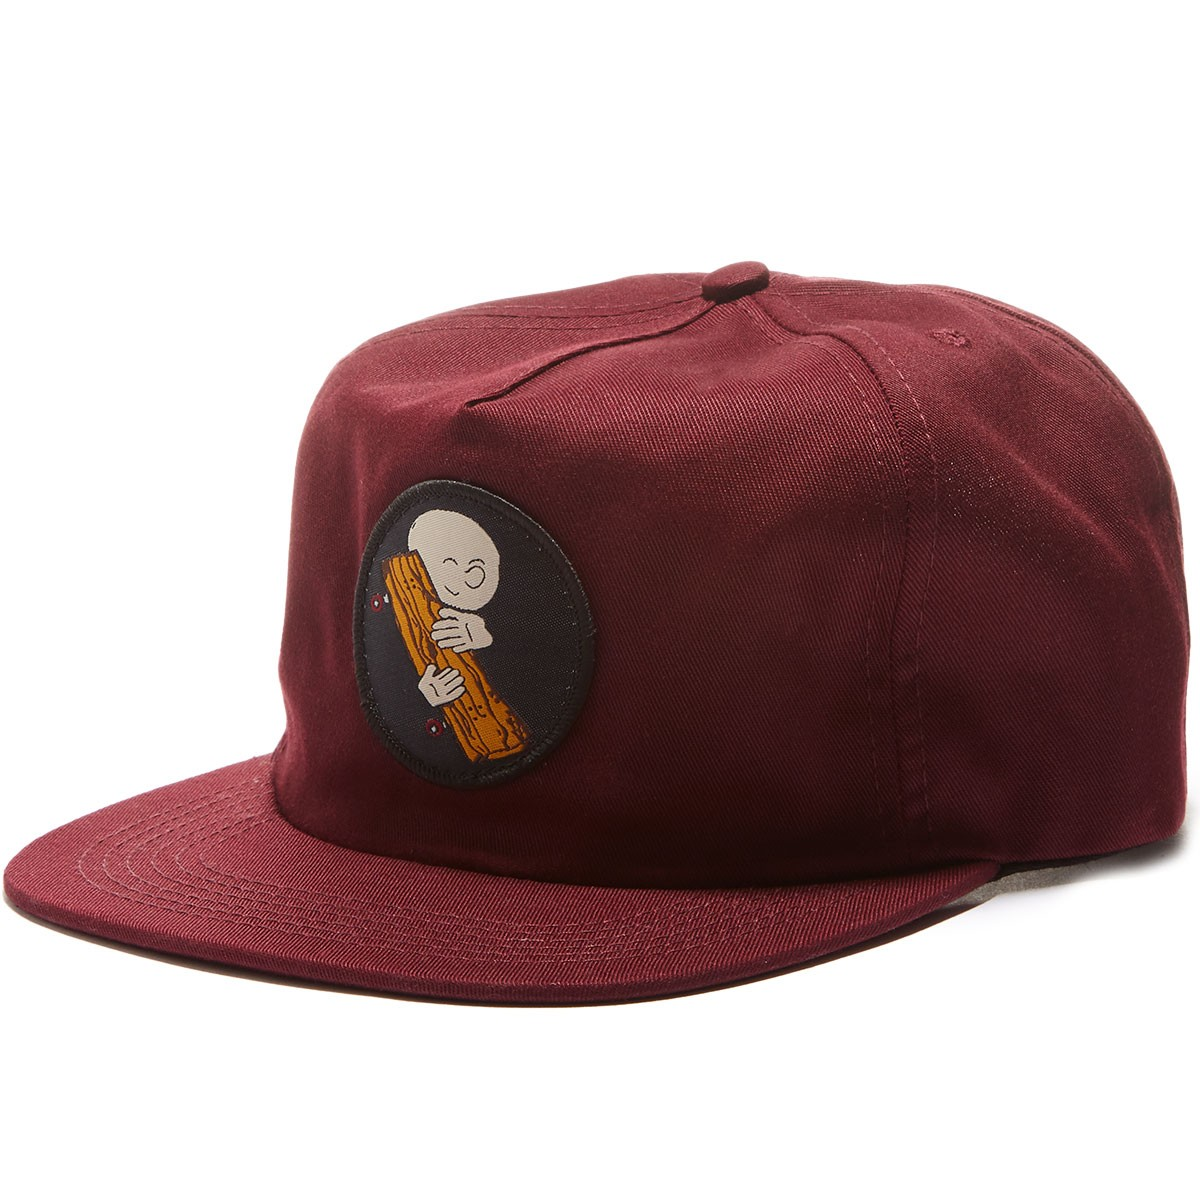 Old Friends Hugger Patch Snapback Hat - Maroon